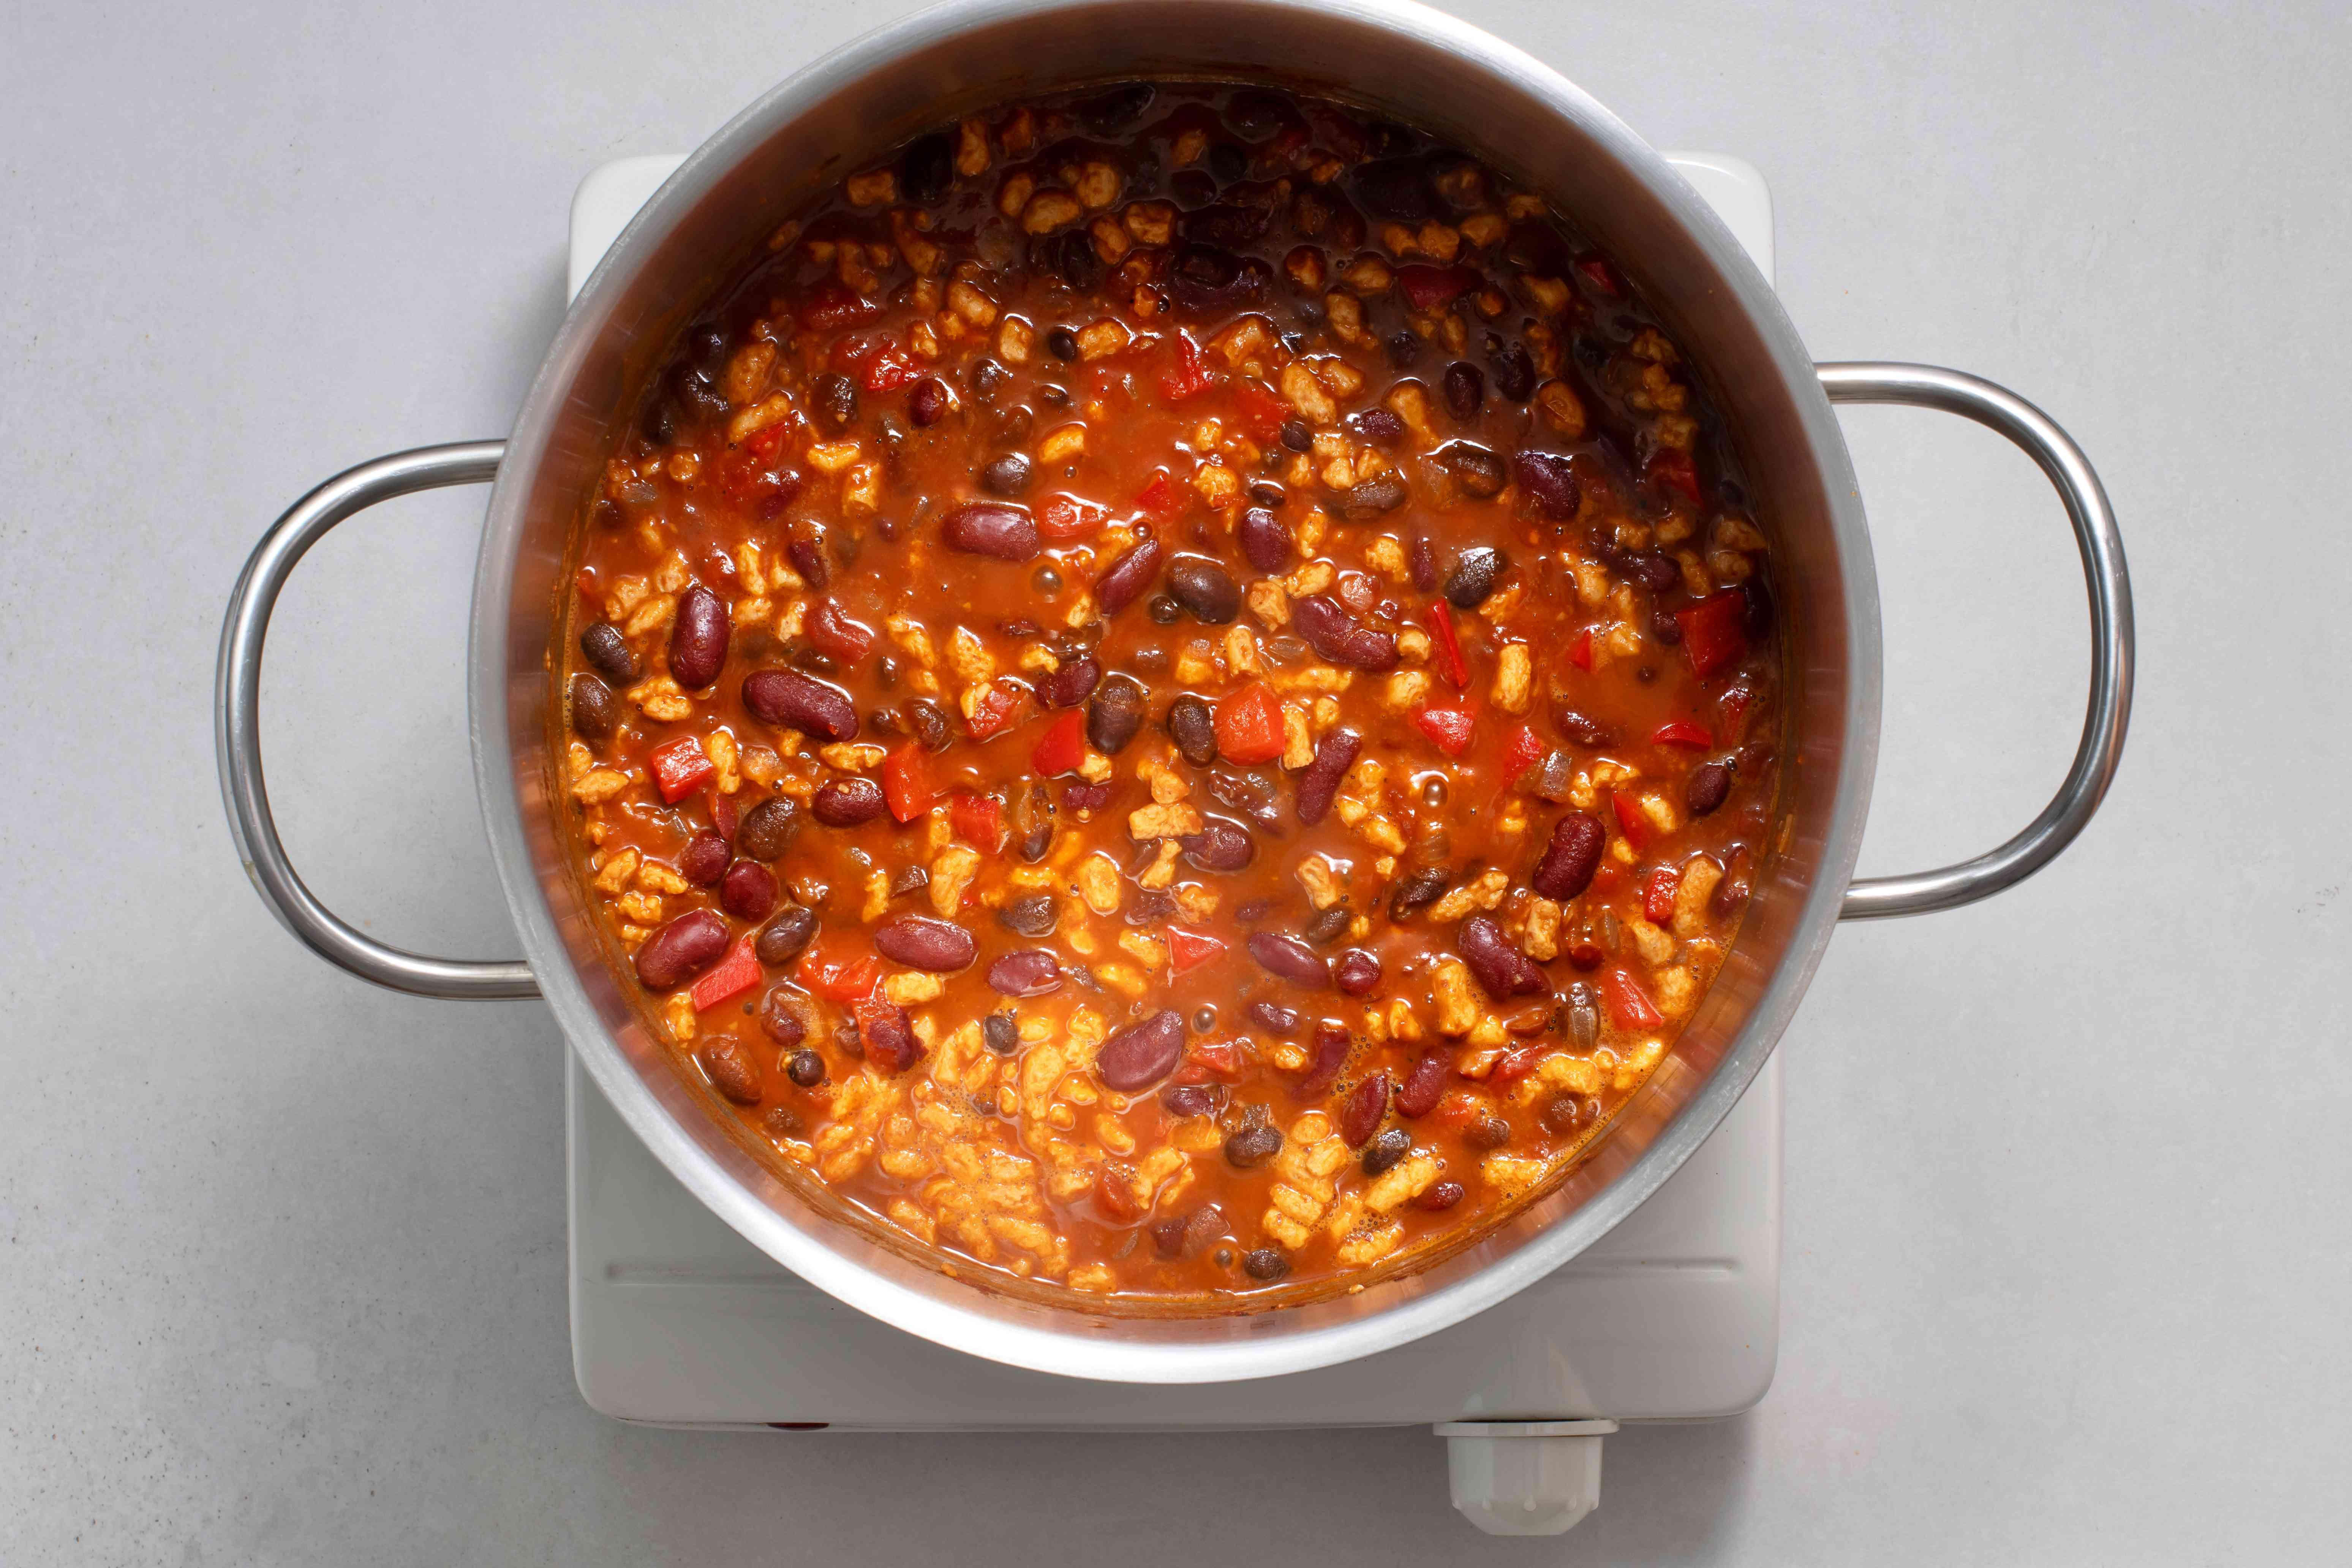 TVP added to chili in the pot